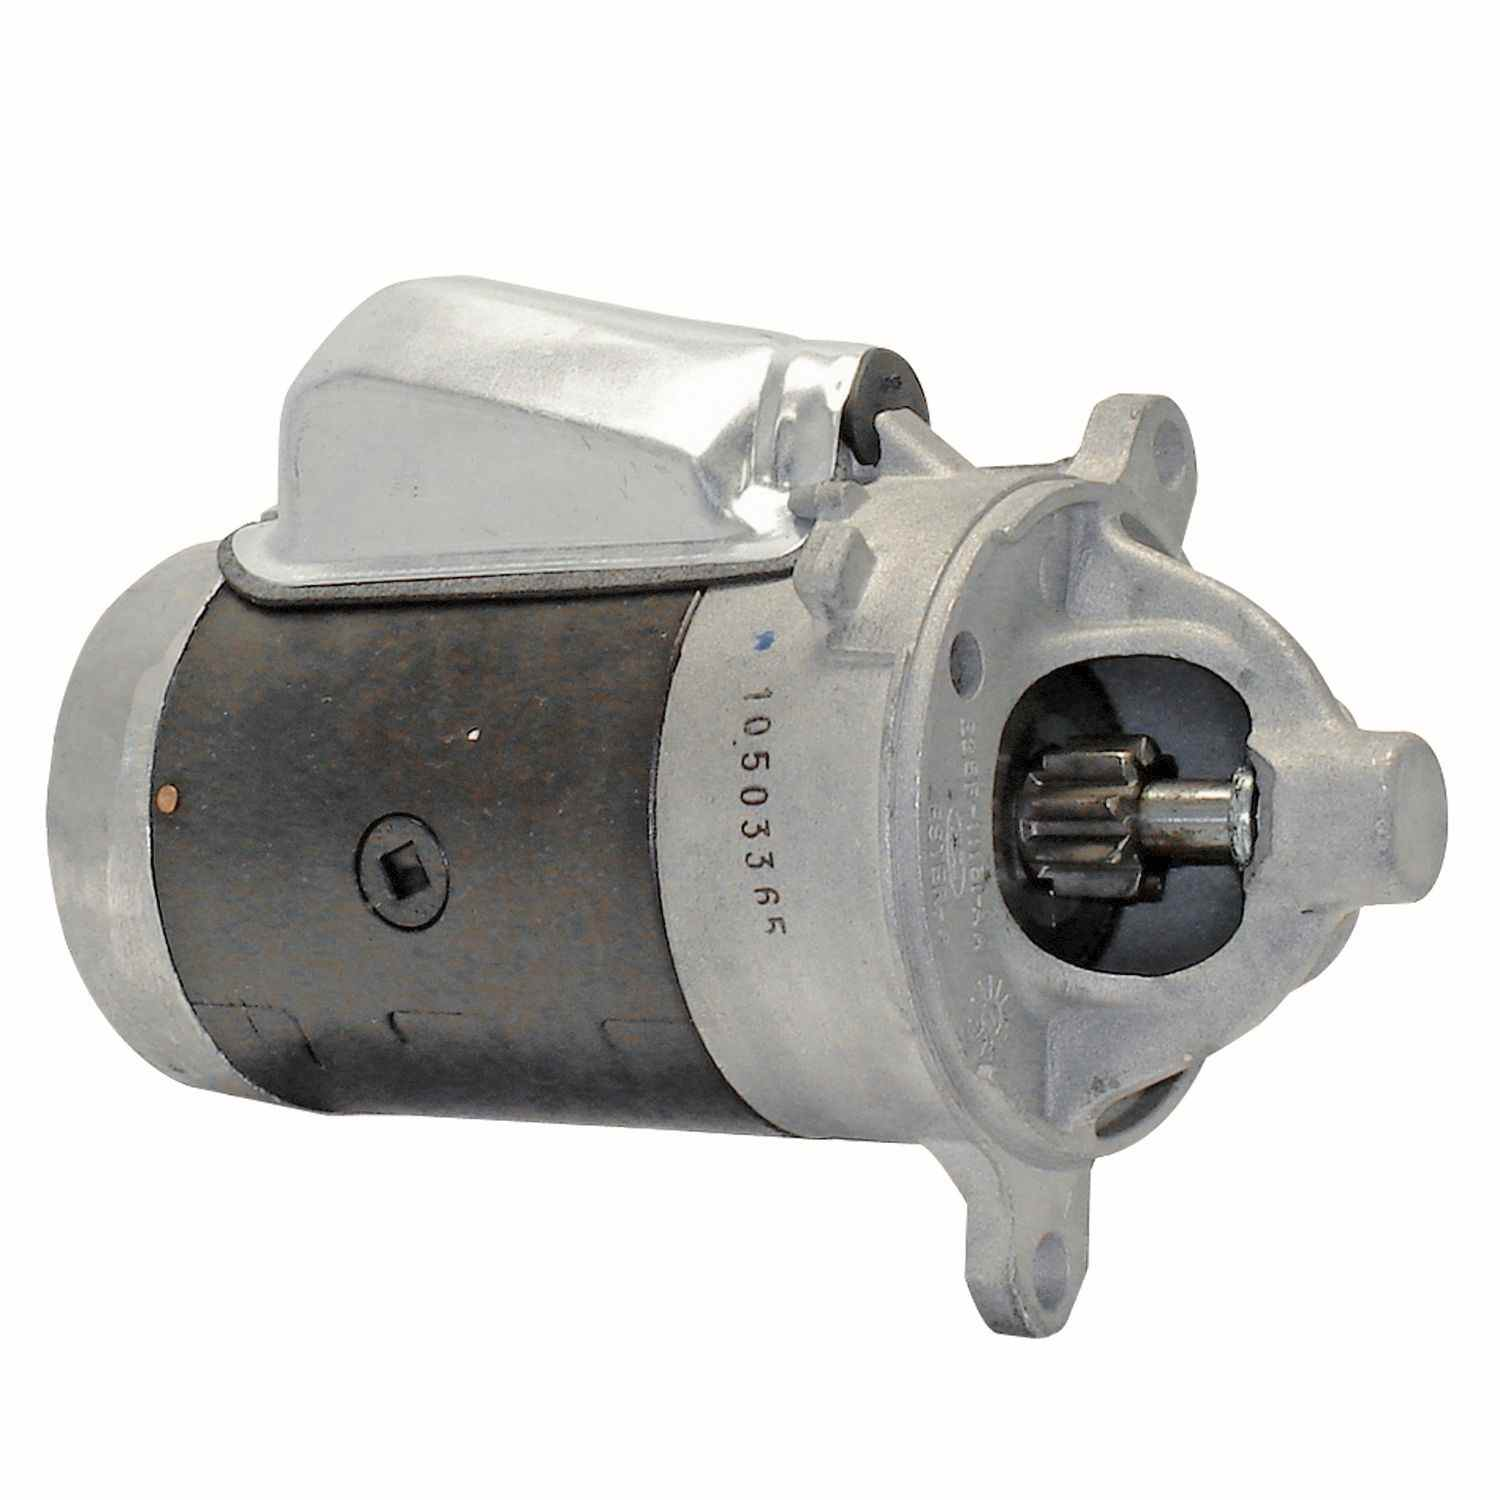 ACDELCO GOLD/PROFESSIONAL - Reman Starter Motor - DCC 336-1031